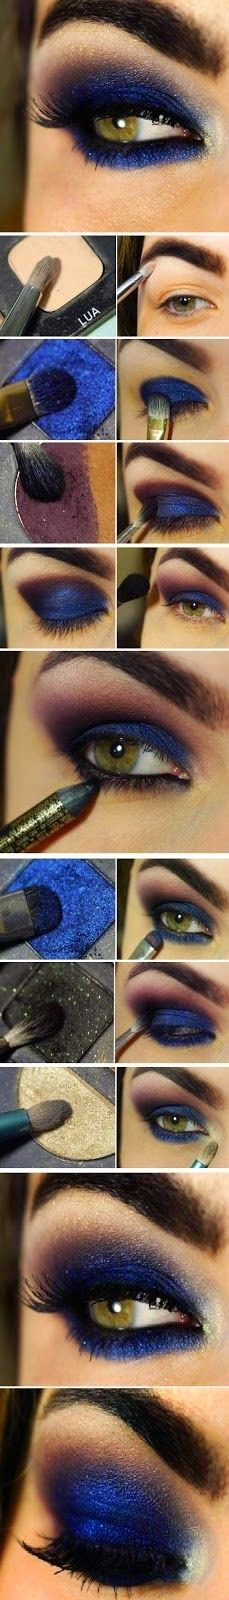 Eye Make Up Tutorial #1.